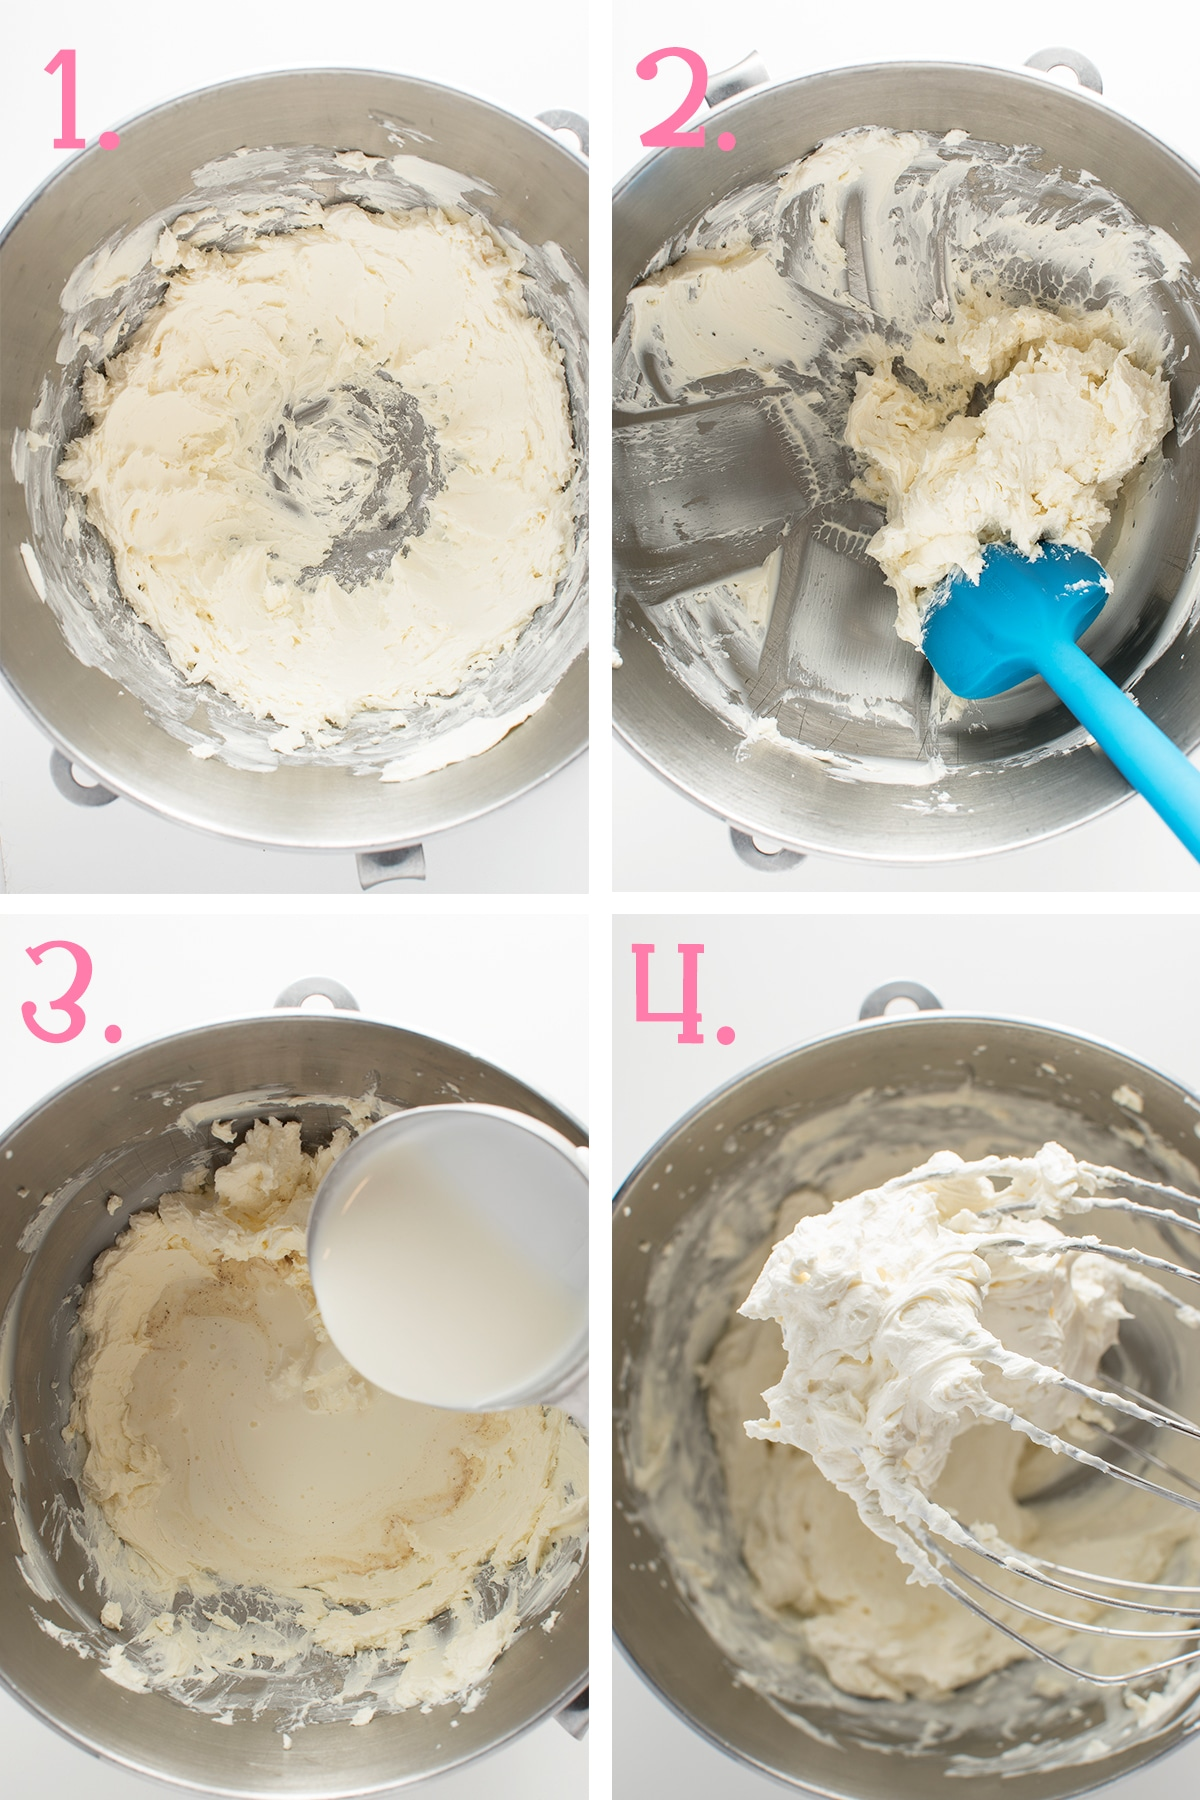 In process photographs of low carb whipped cream frosting being made